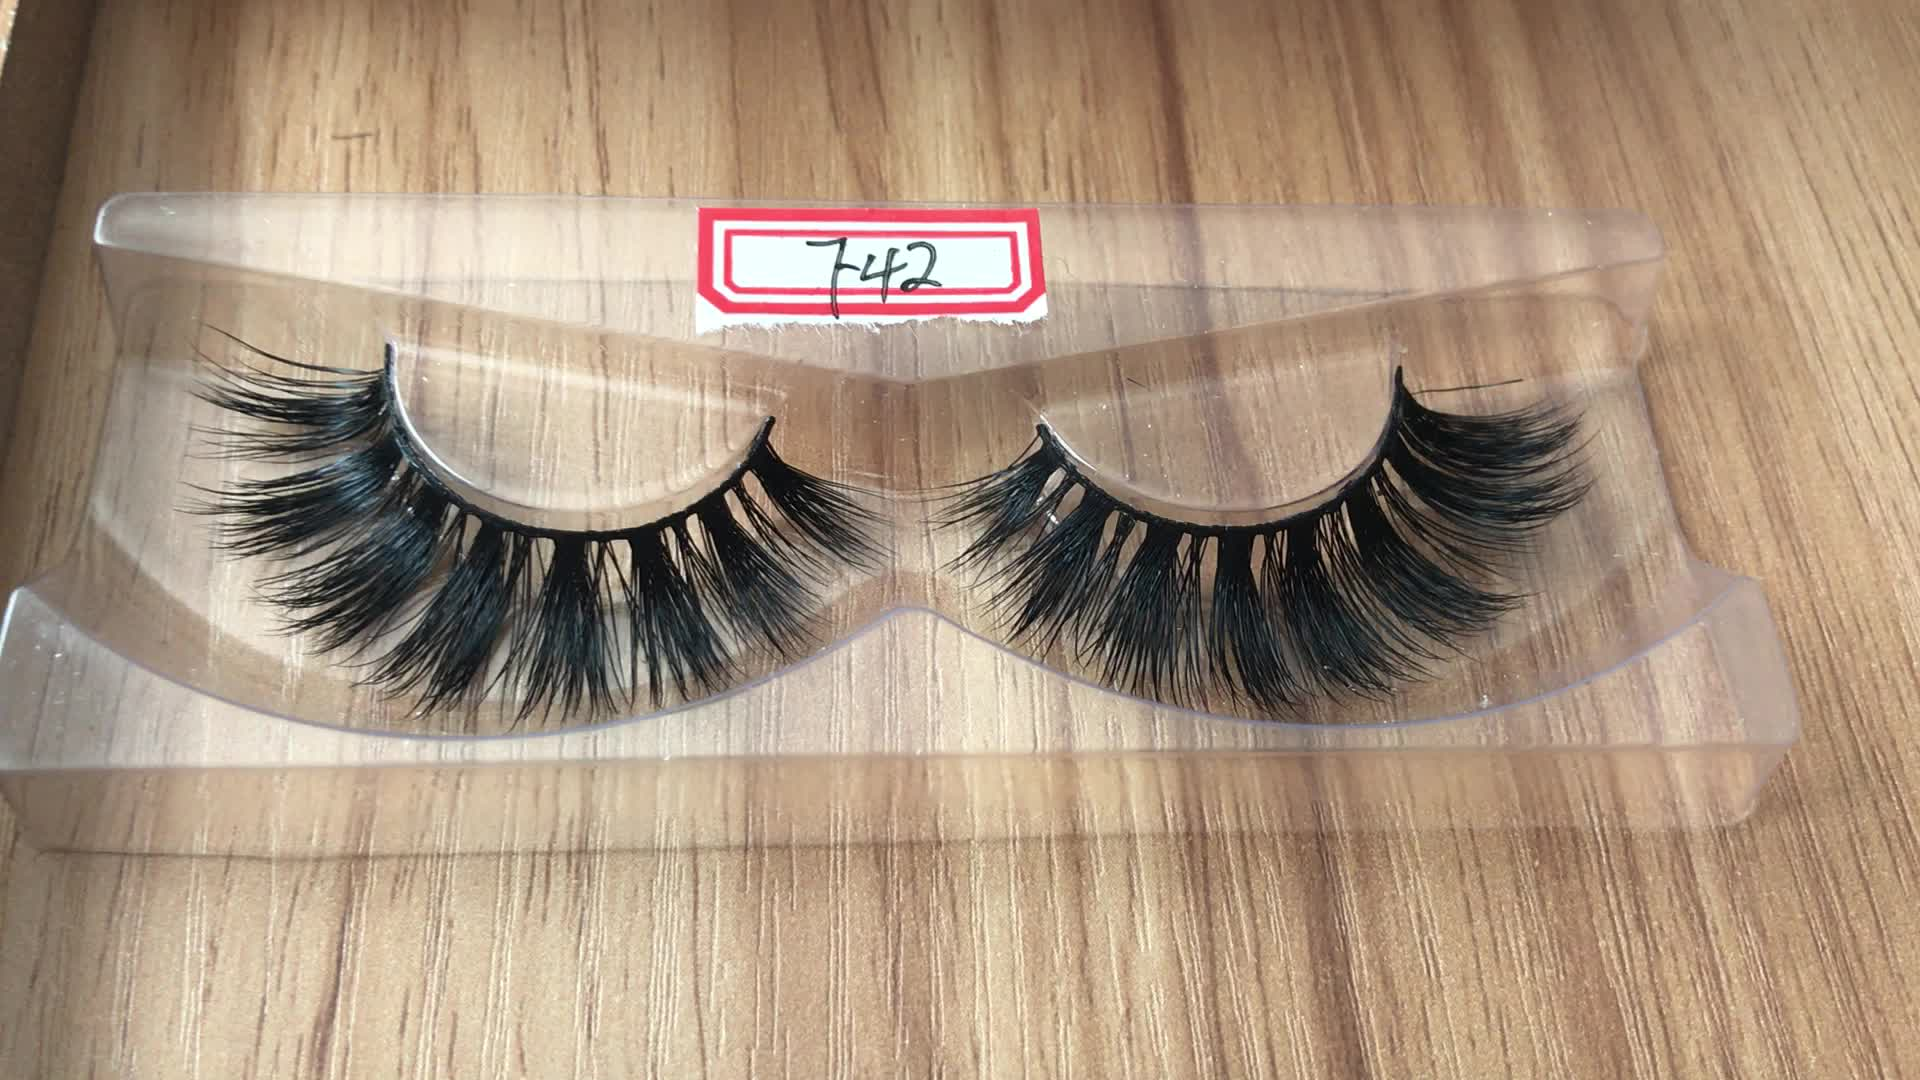 Cruelty free natural lashes mink eyelash vendor with custom packaging